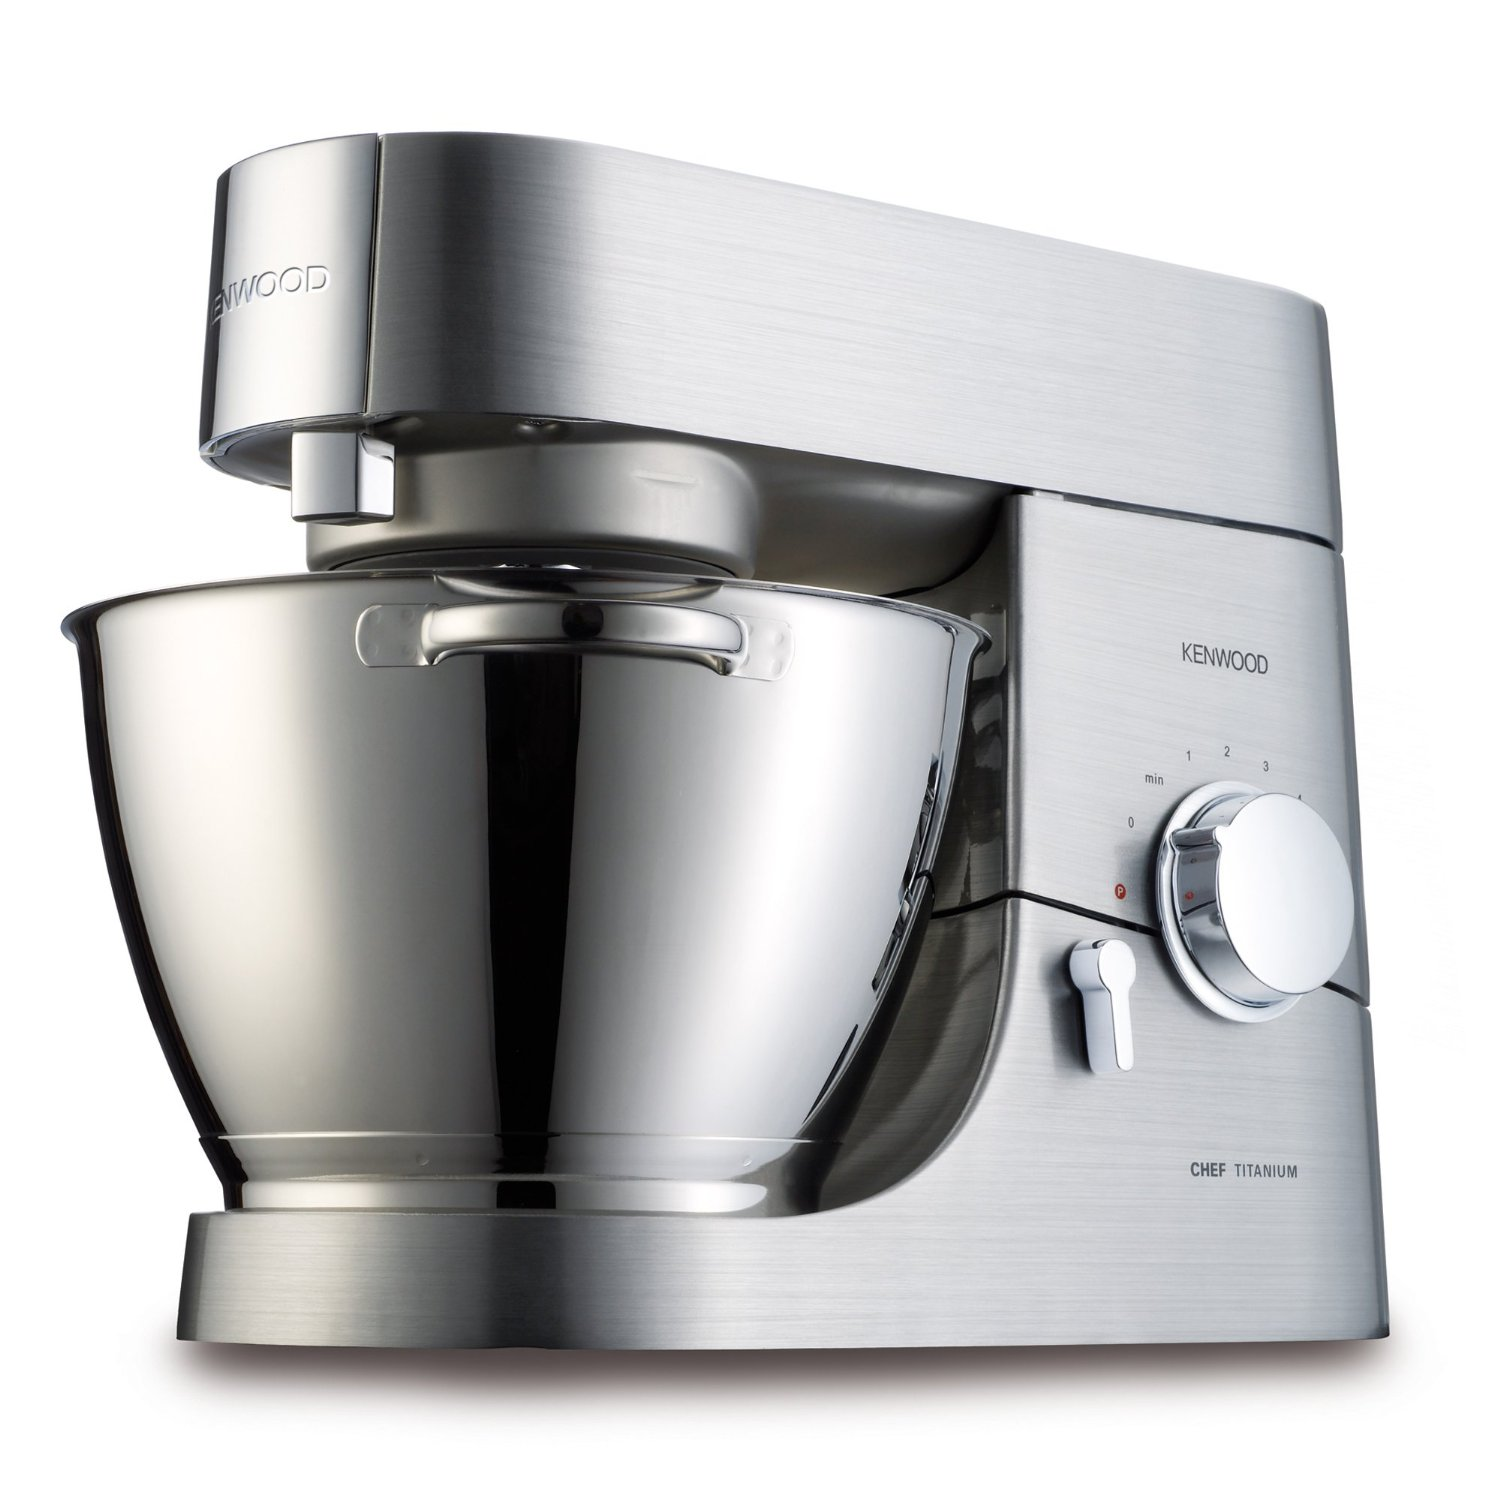 Comparatif Robot Patissier Kenwood Et Kitchenaid Test Du Robot De Cuisine Multi Fonction Kenwood Kmc050